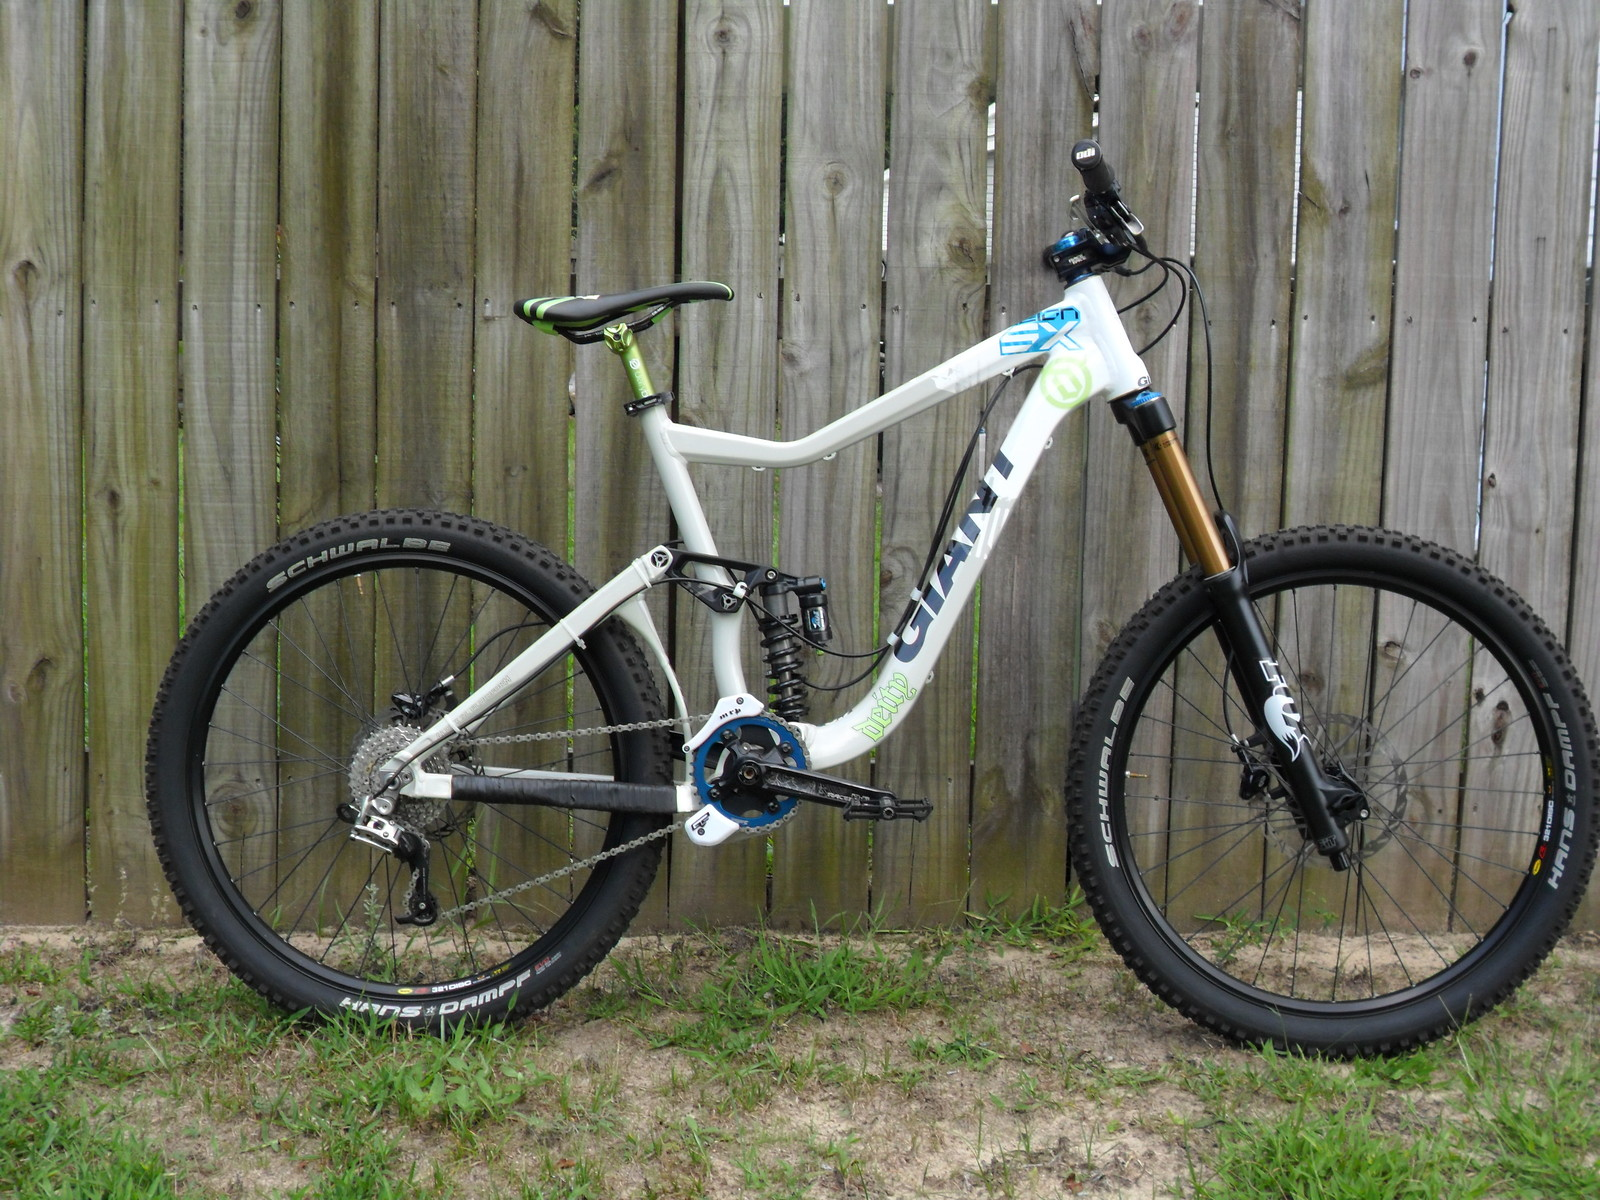 2010 Giant Reign SX by PaulR. (Parabellum Shane's Brother)